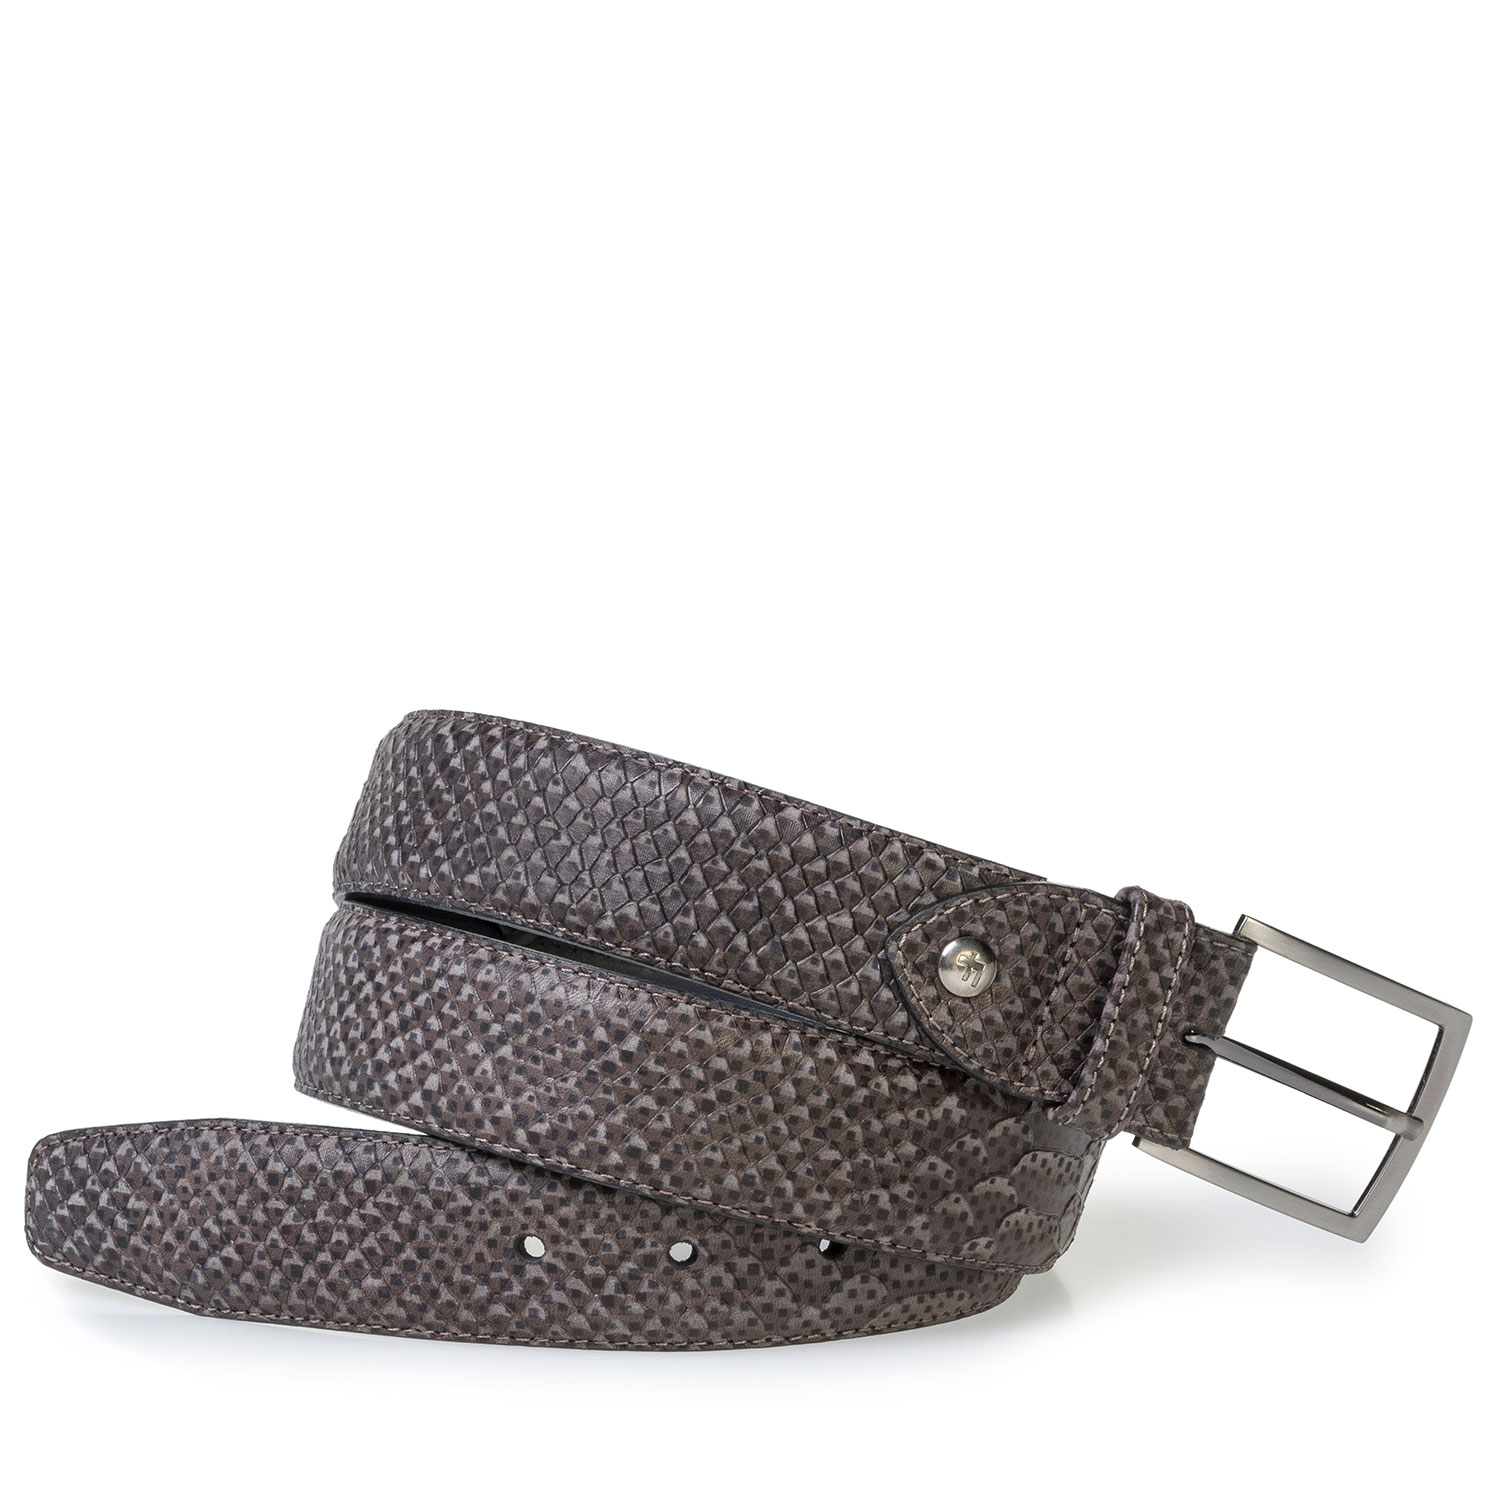 75200/67 - Dark grey leather belt with snake print